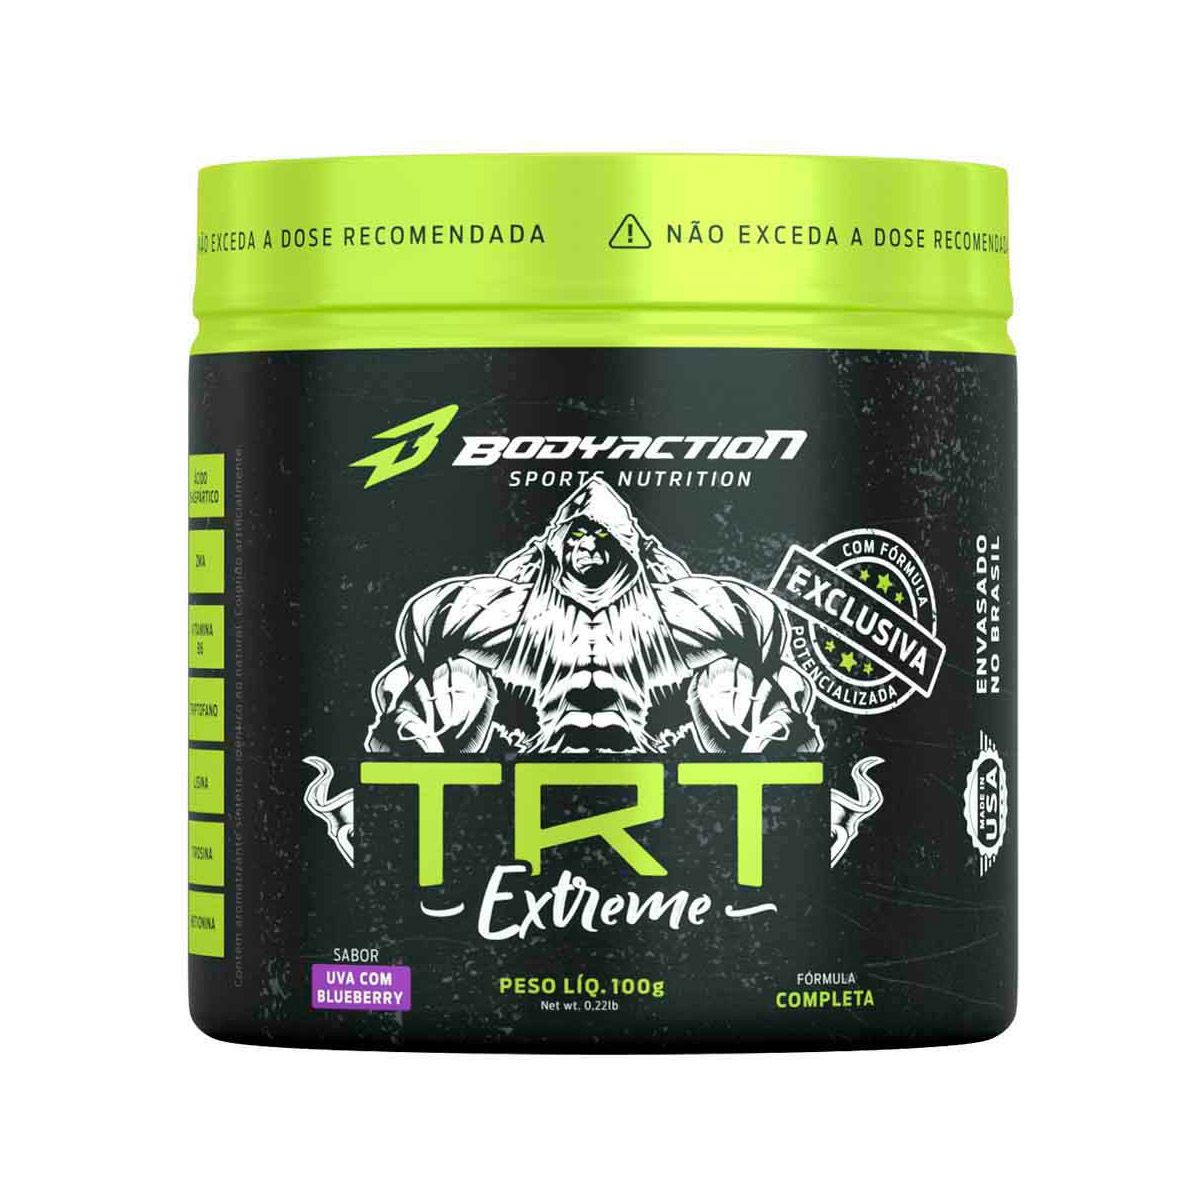 TRT Extreme - 100g - Body Action